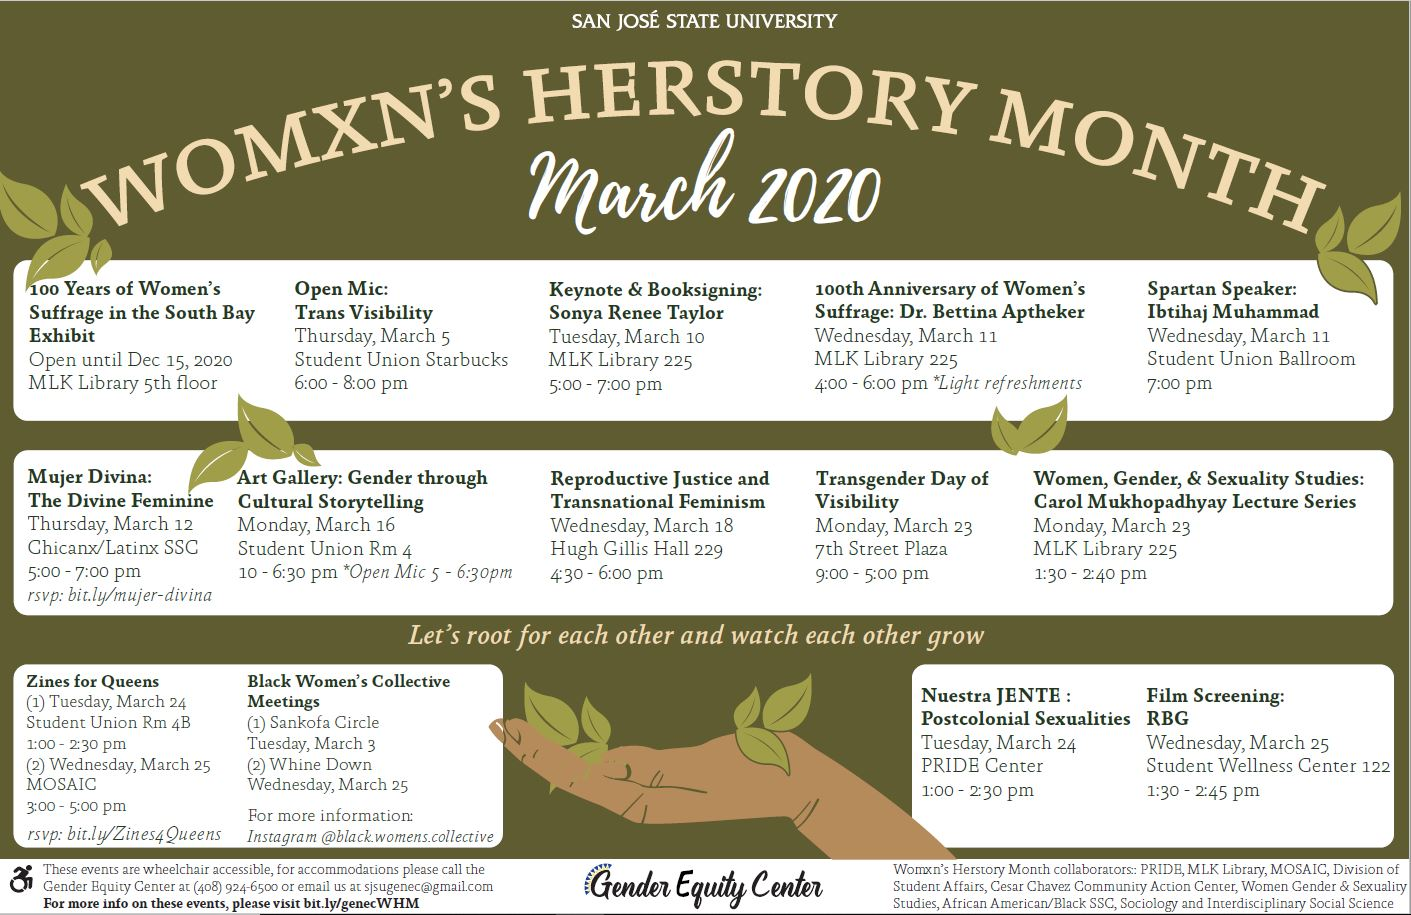 Womxn's Herstory Month calendar of events.